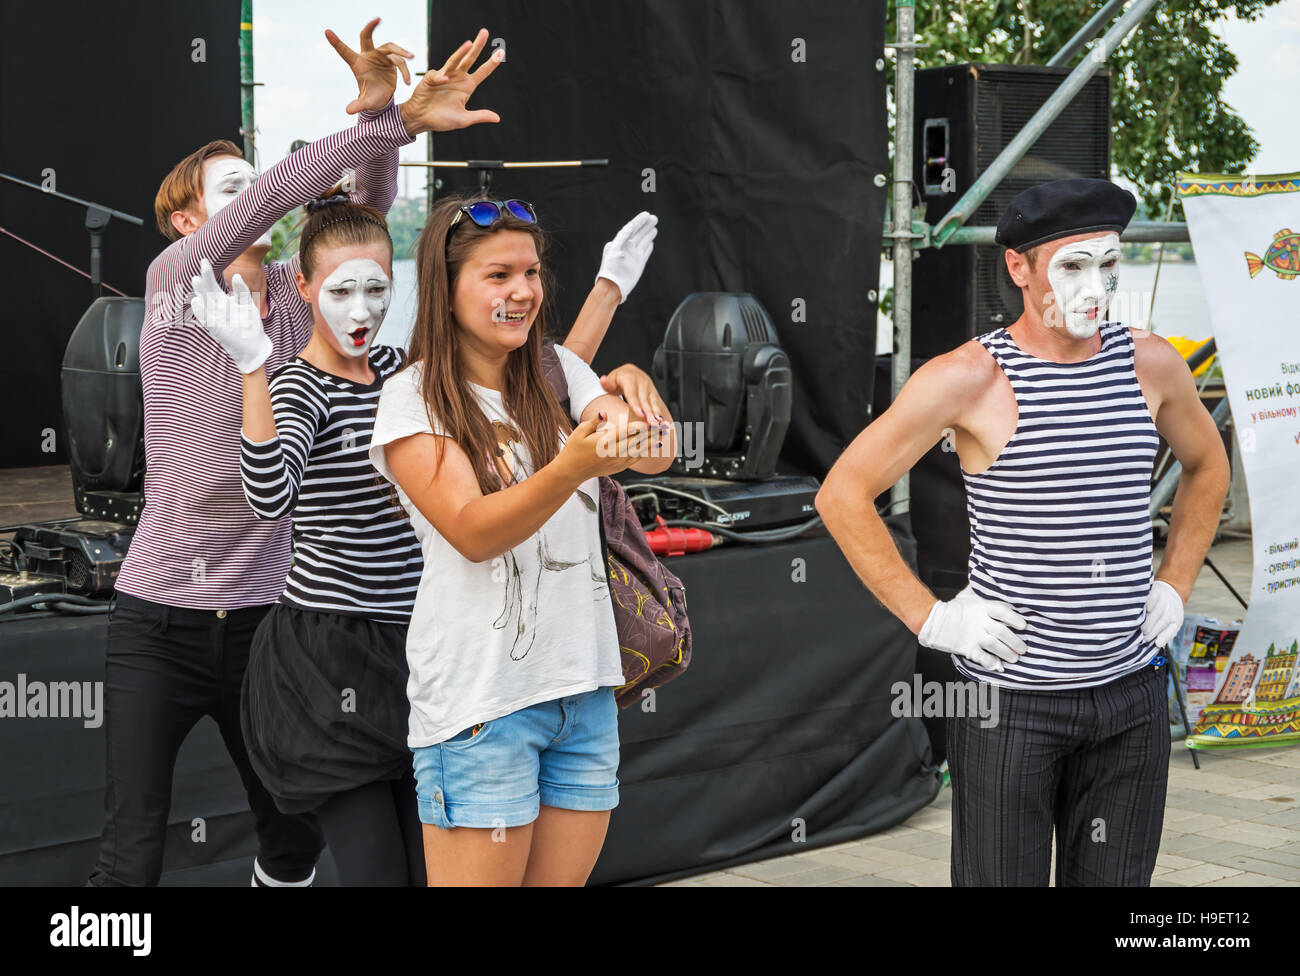 Dnepropetrovsk, Ukraine - June 29, 2013: Performance mime artists at the city festival of street art - Stock Image